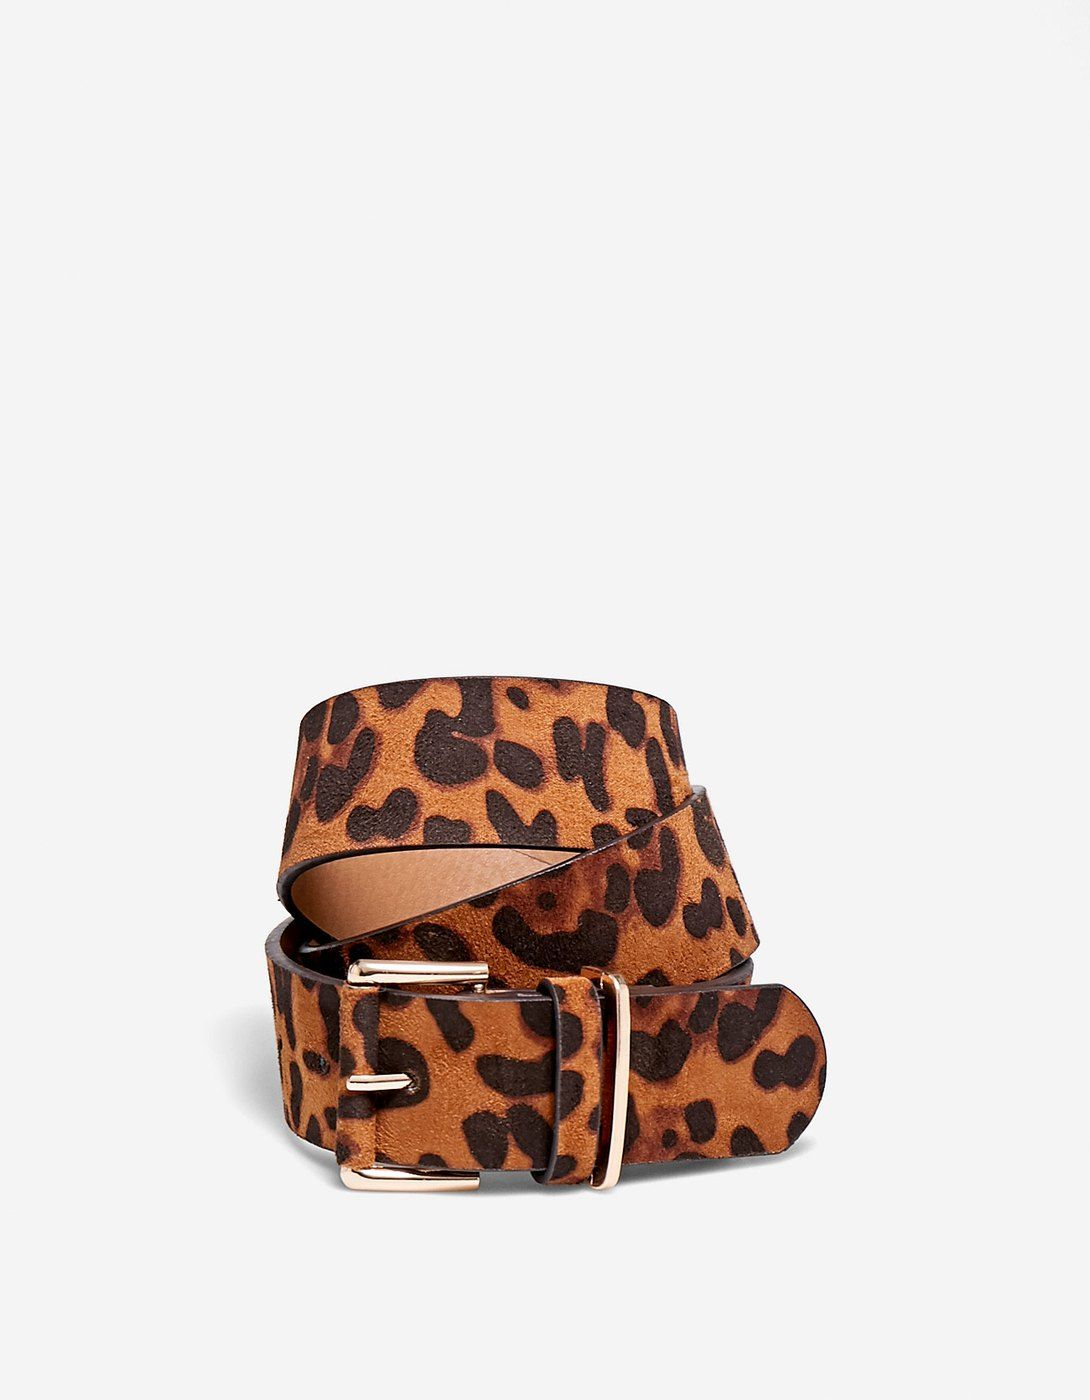 At Stradivarius You Ll Find 1 Leopar Desenli Kemer For Just 29 95 Turkiye Visit Now To Discover This And More Tisort Crina